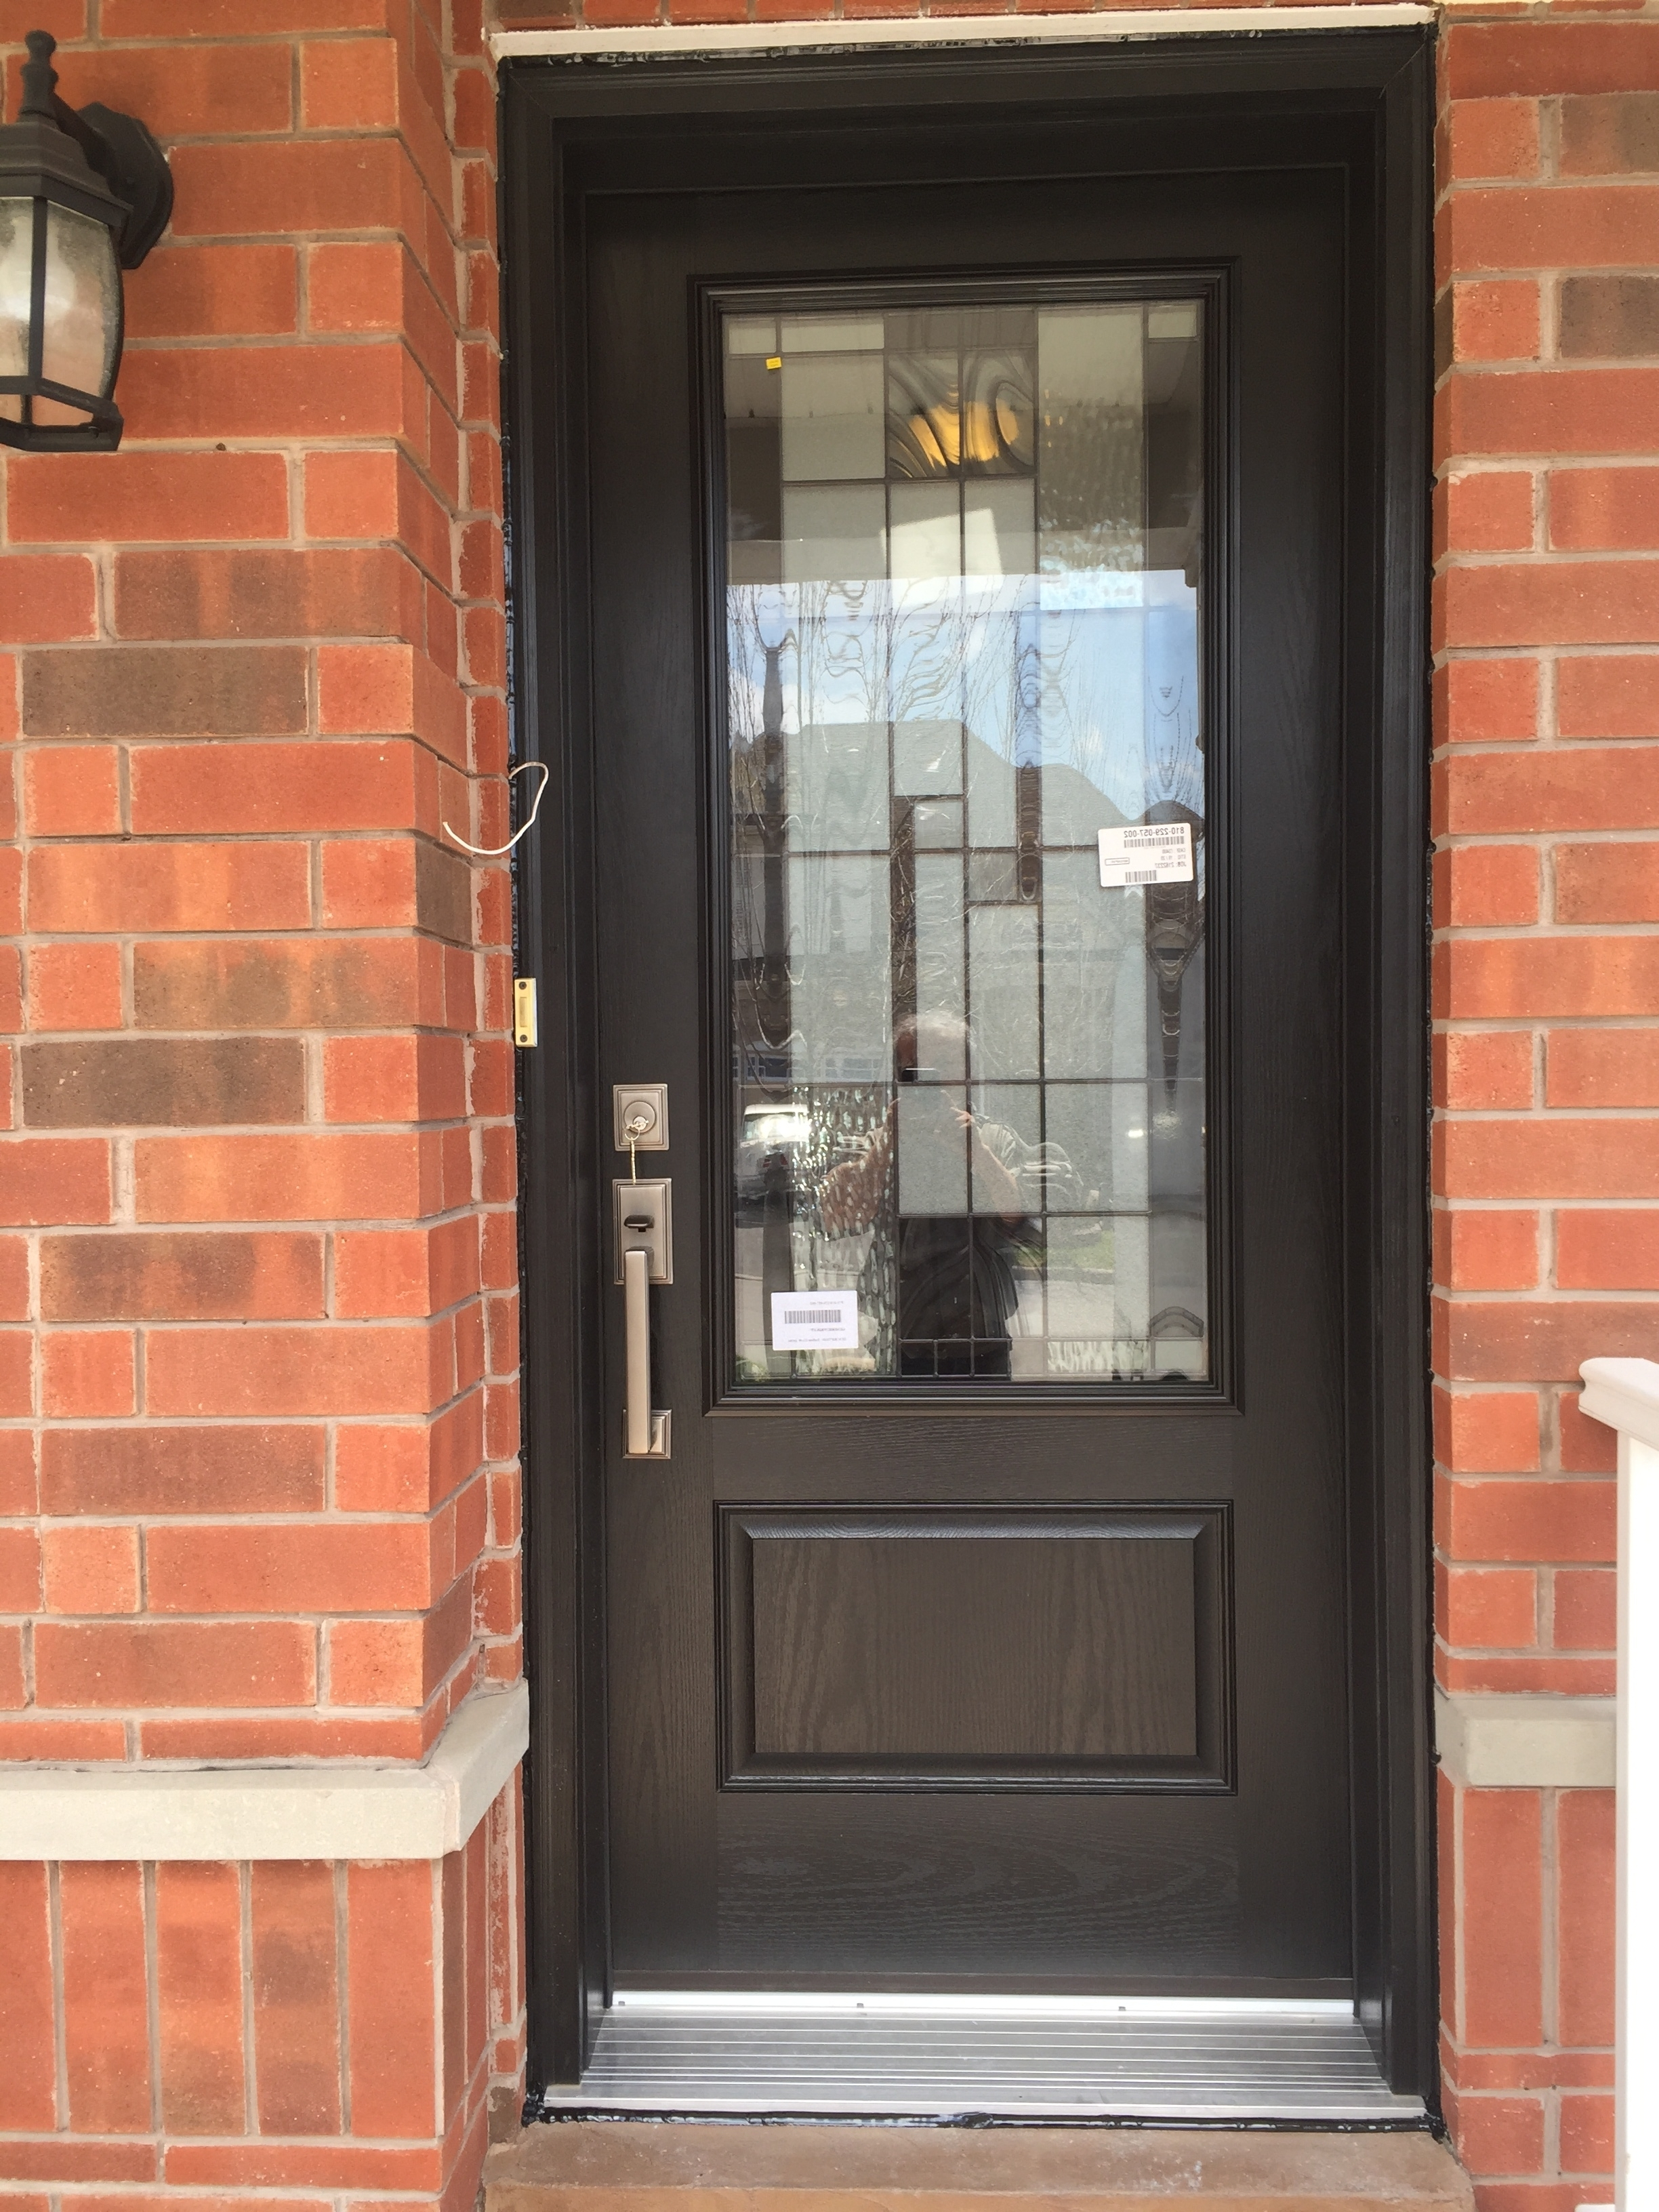 Residential Aluminum Entrance Doors : Doors residential of exterior